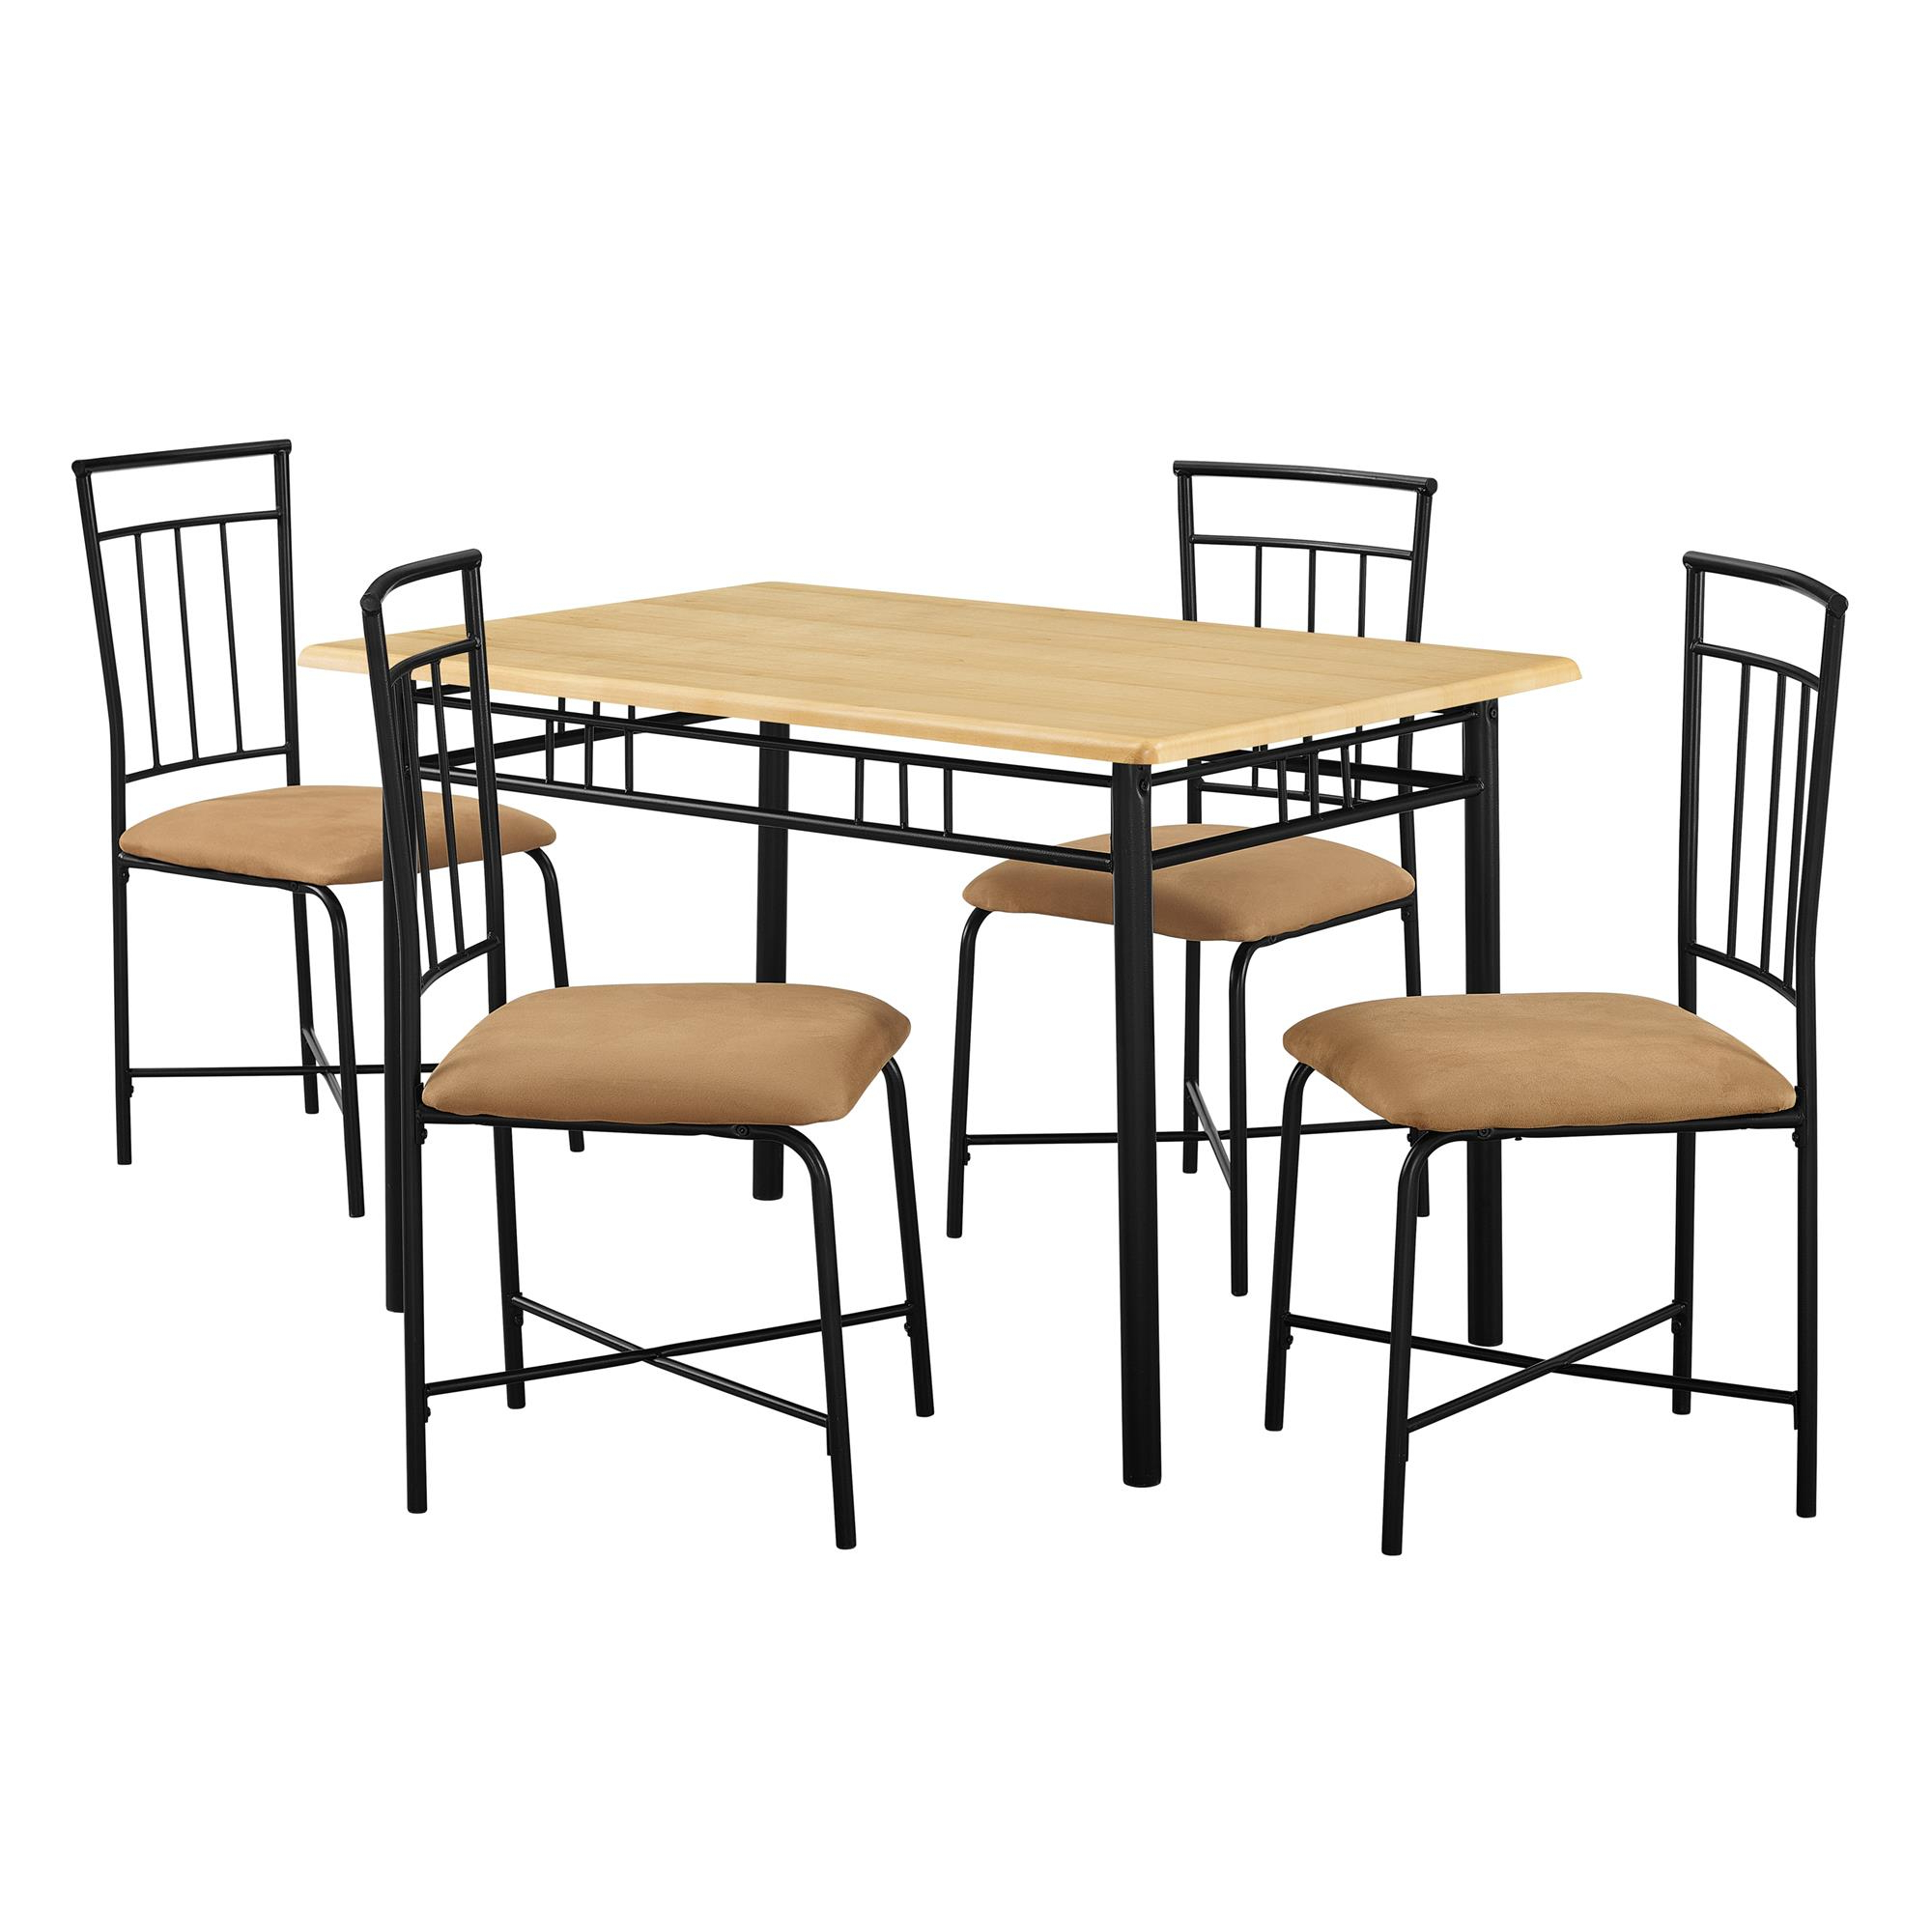 West Hill Family Table 3 Piece Dining Sets For Most Popular Mainstays 5 Piece Dining Set, Multiple Colors – Walmart (View 19 of 25)